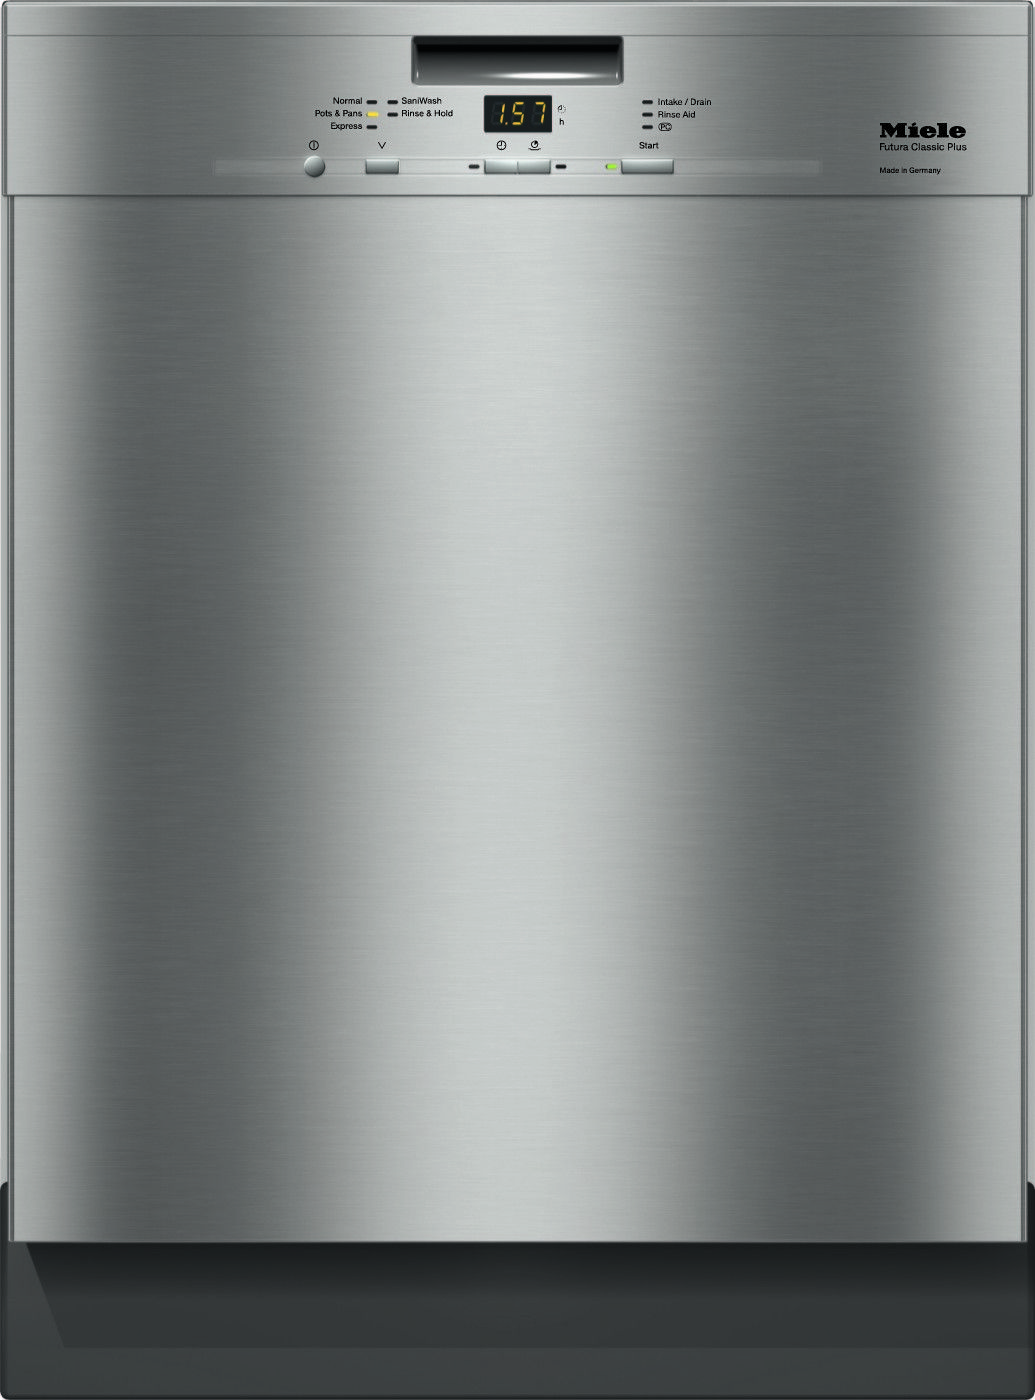 Miele G4925 Full Console Dishwasher With 5 Wash Cycles Flexicare Deluxe Basket Miele Dishwasher Built In Dishwasher Quiet Dishwashers